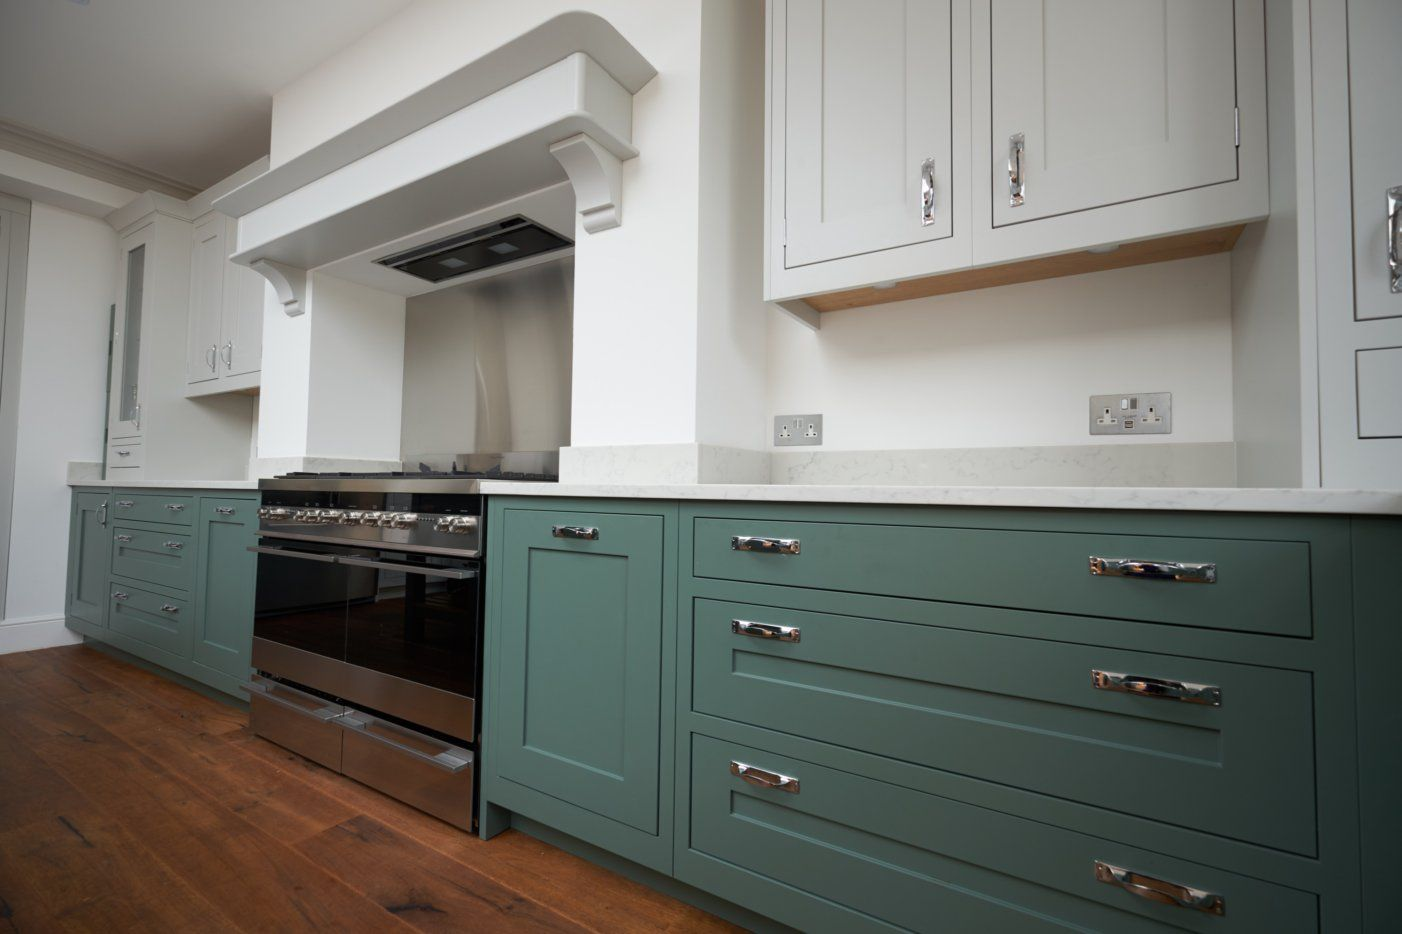 Traditional In Frame Kitchen Painted In Farrow And Ball Ammonite And Green Smoke Diy Kitchen Cabinets Painting Cost Of Kitchen Cabinets Cheap Kitchen Cabinets